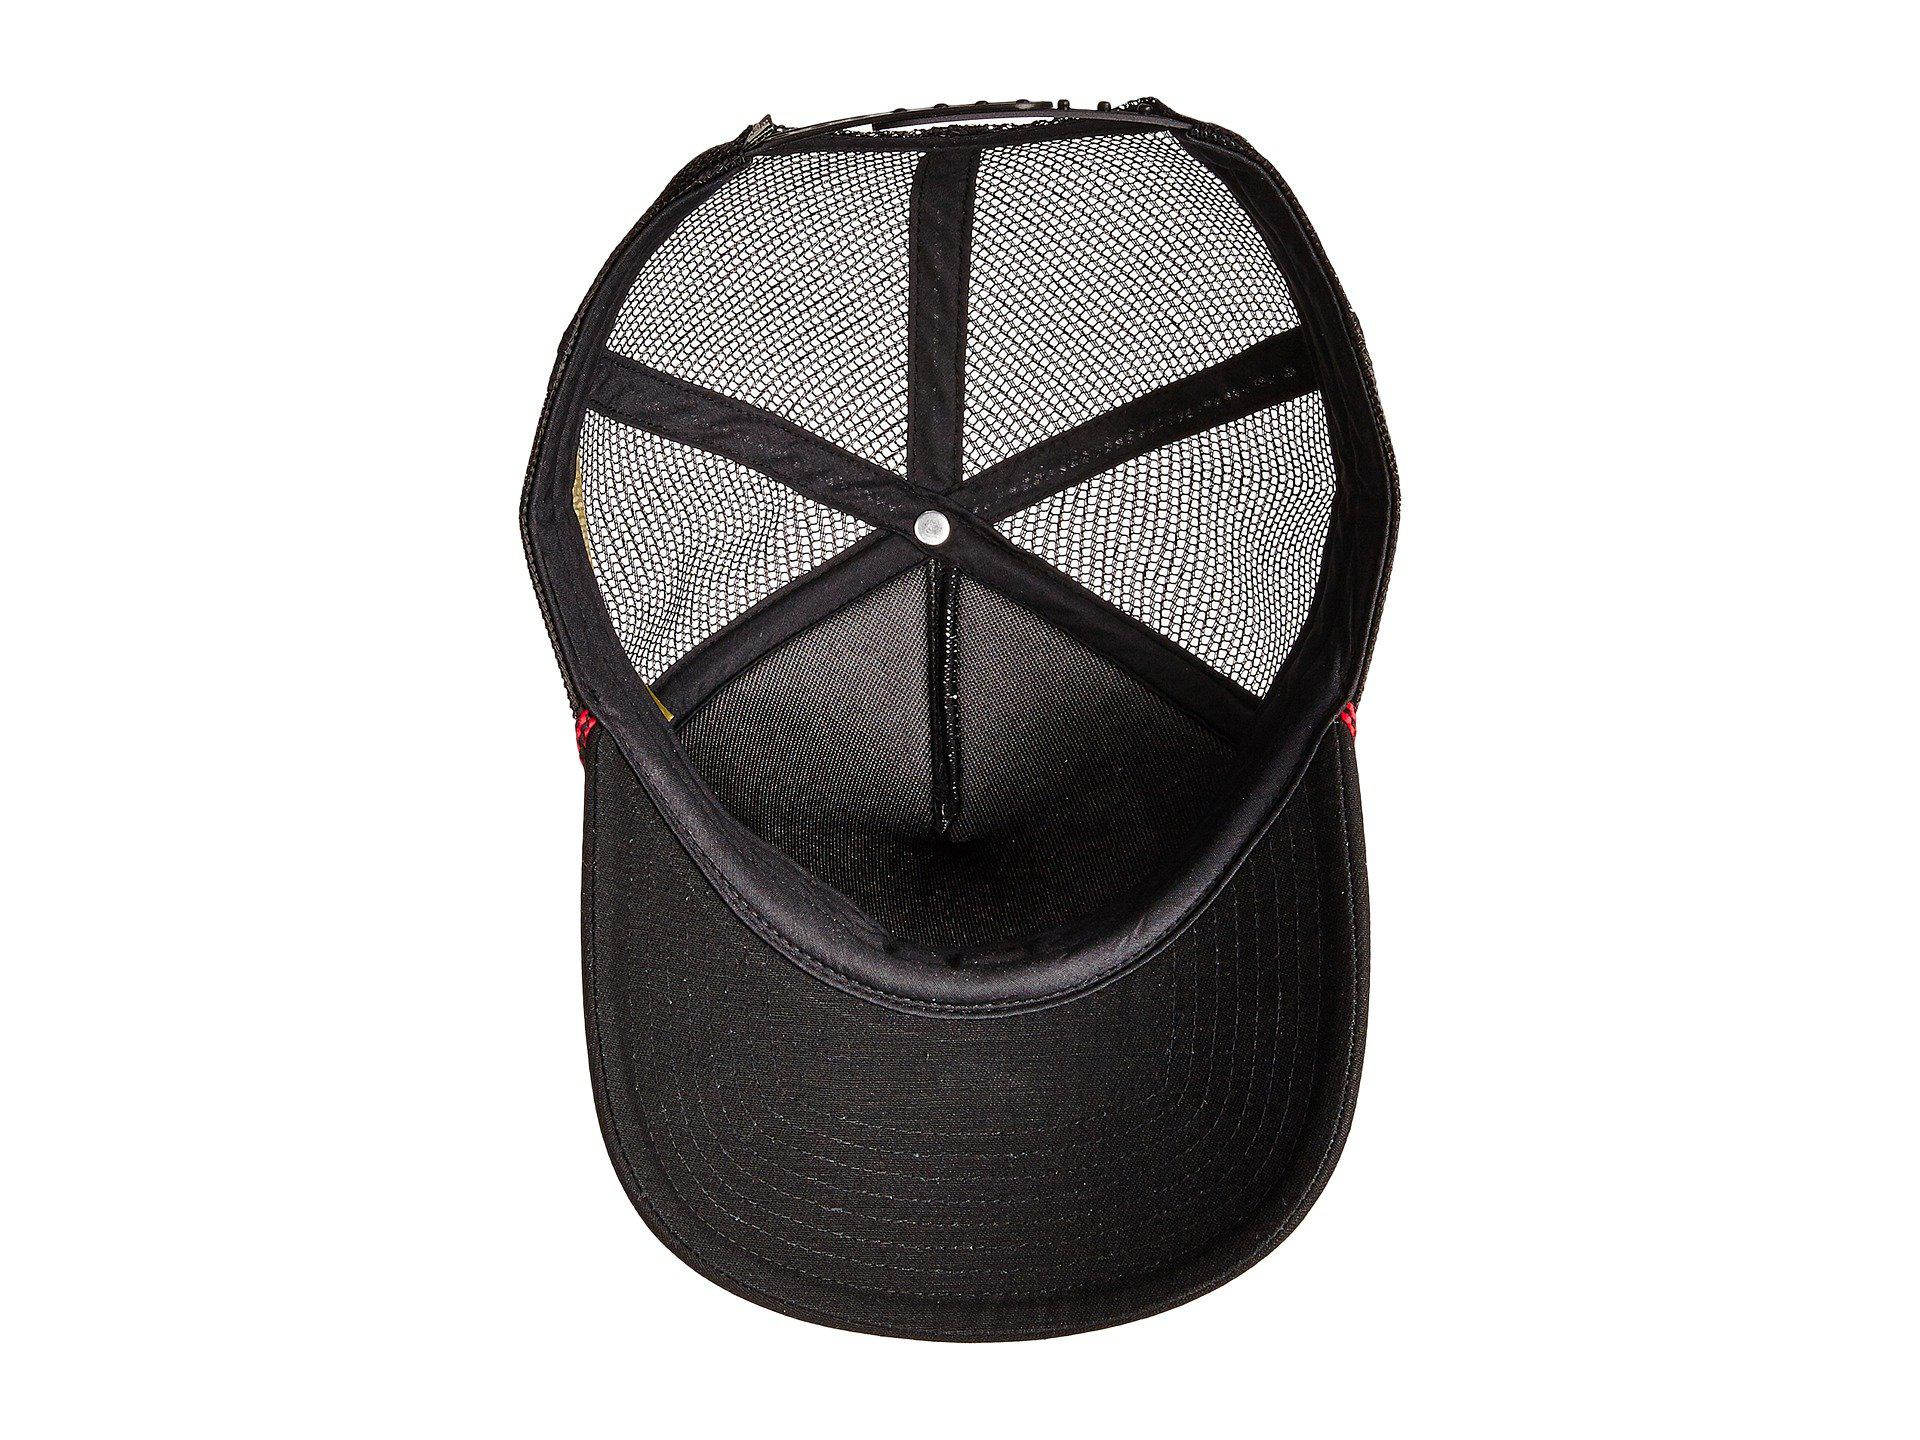 095bf6287a4 Lyst - The North Face Cross Stitch Trucker Hat in Black for Men